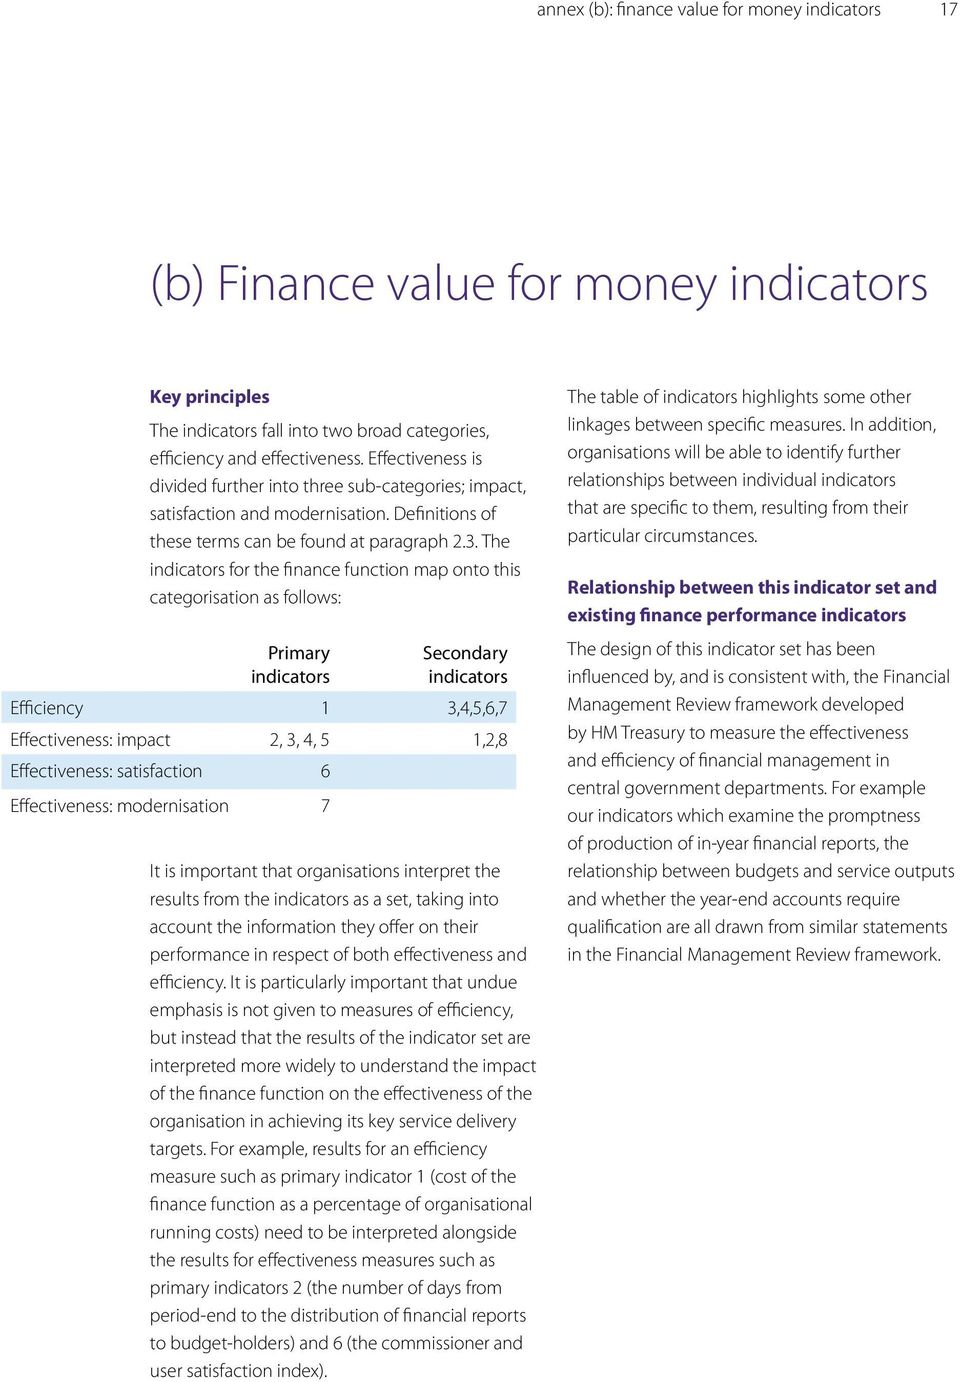 The indicators for the finance function map onto this categorisation as foows: Primary indicators Secondary indicators Efficiency 1 3,4,5,6,7 Effectiveness: impact 2, 3, 4, 5 1,2,8 Effectiveness: